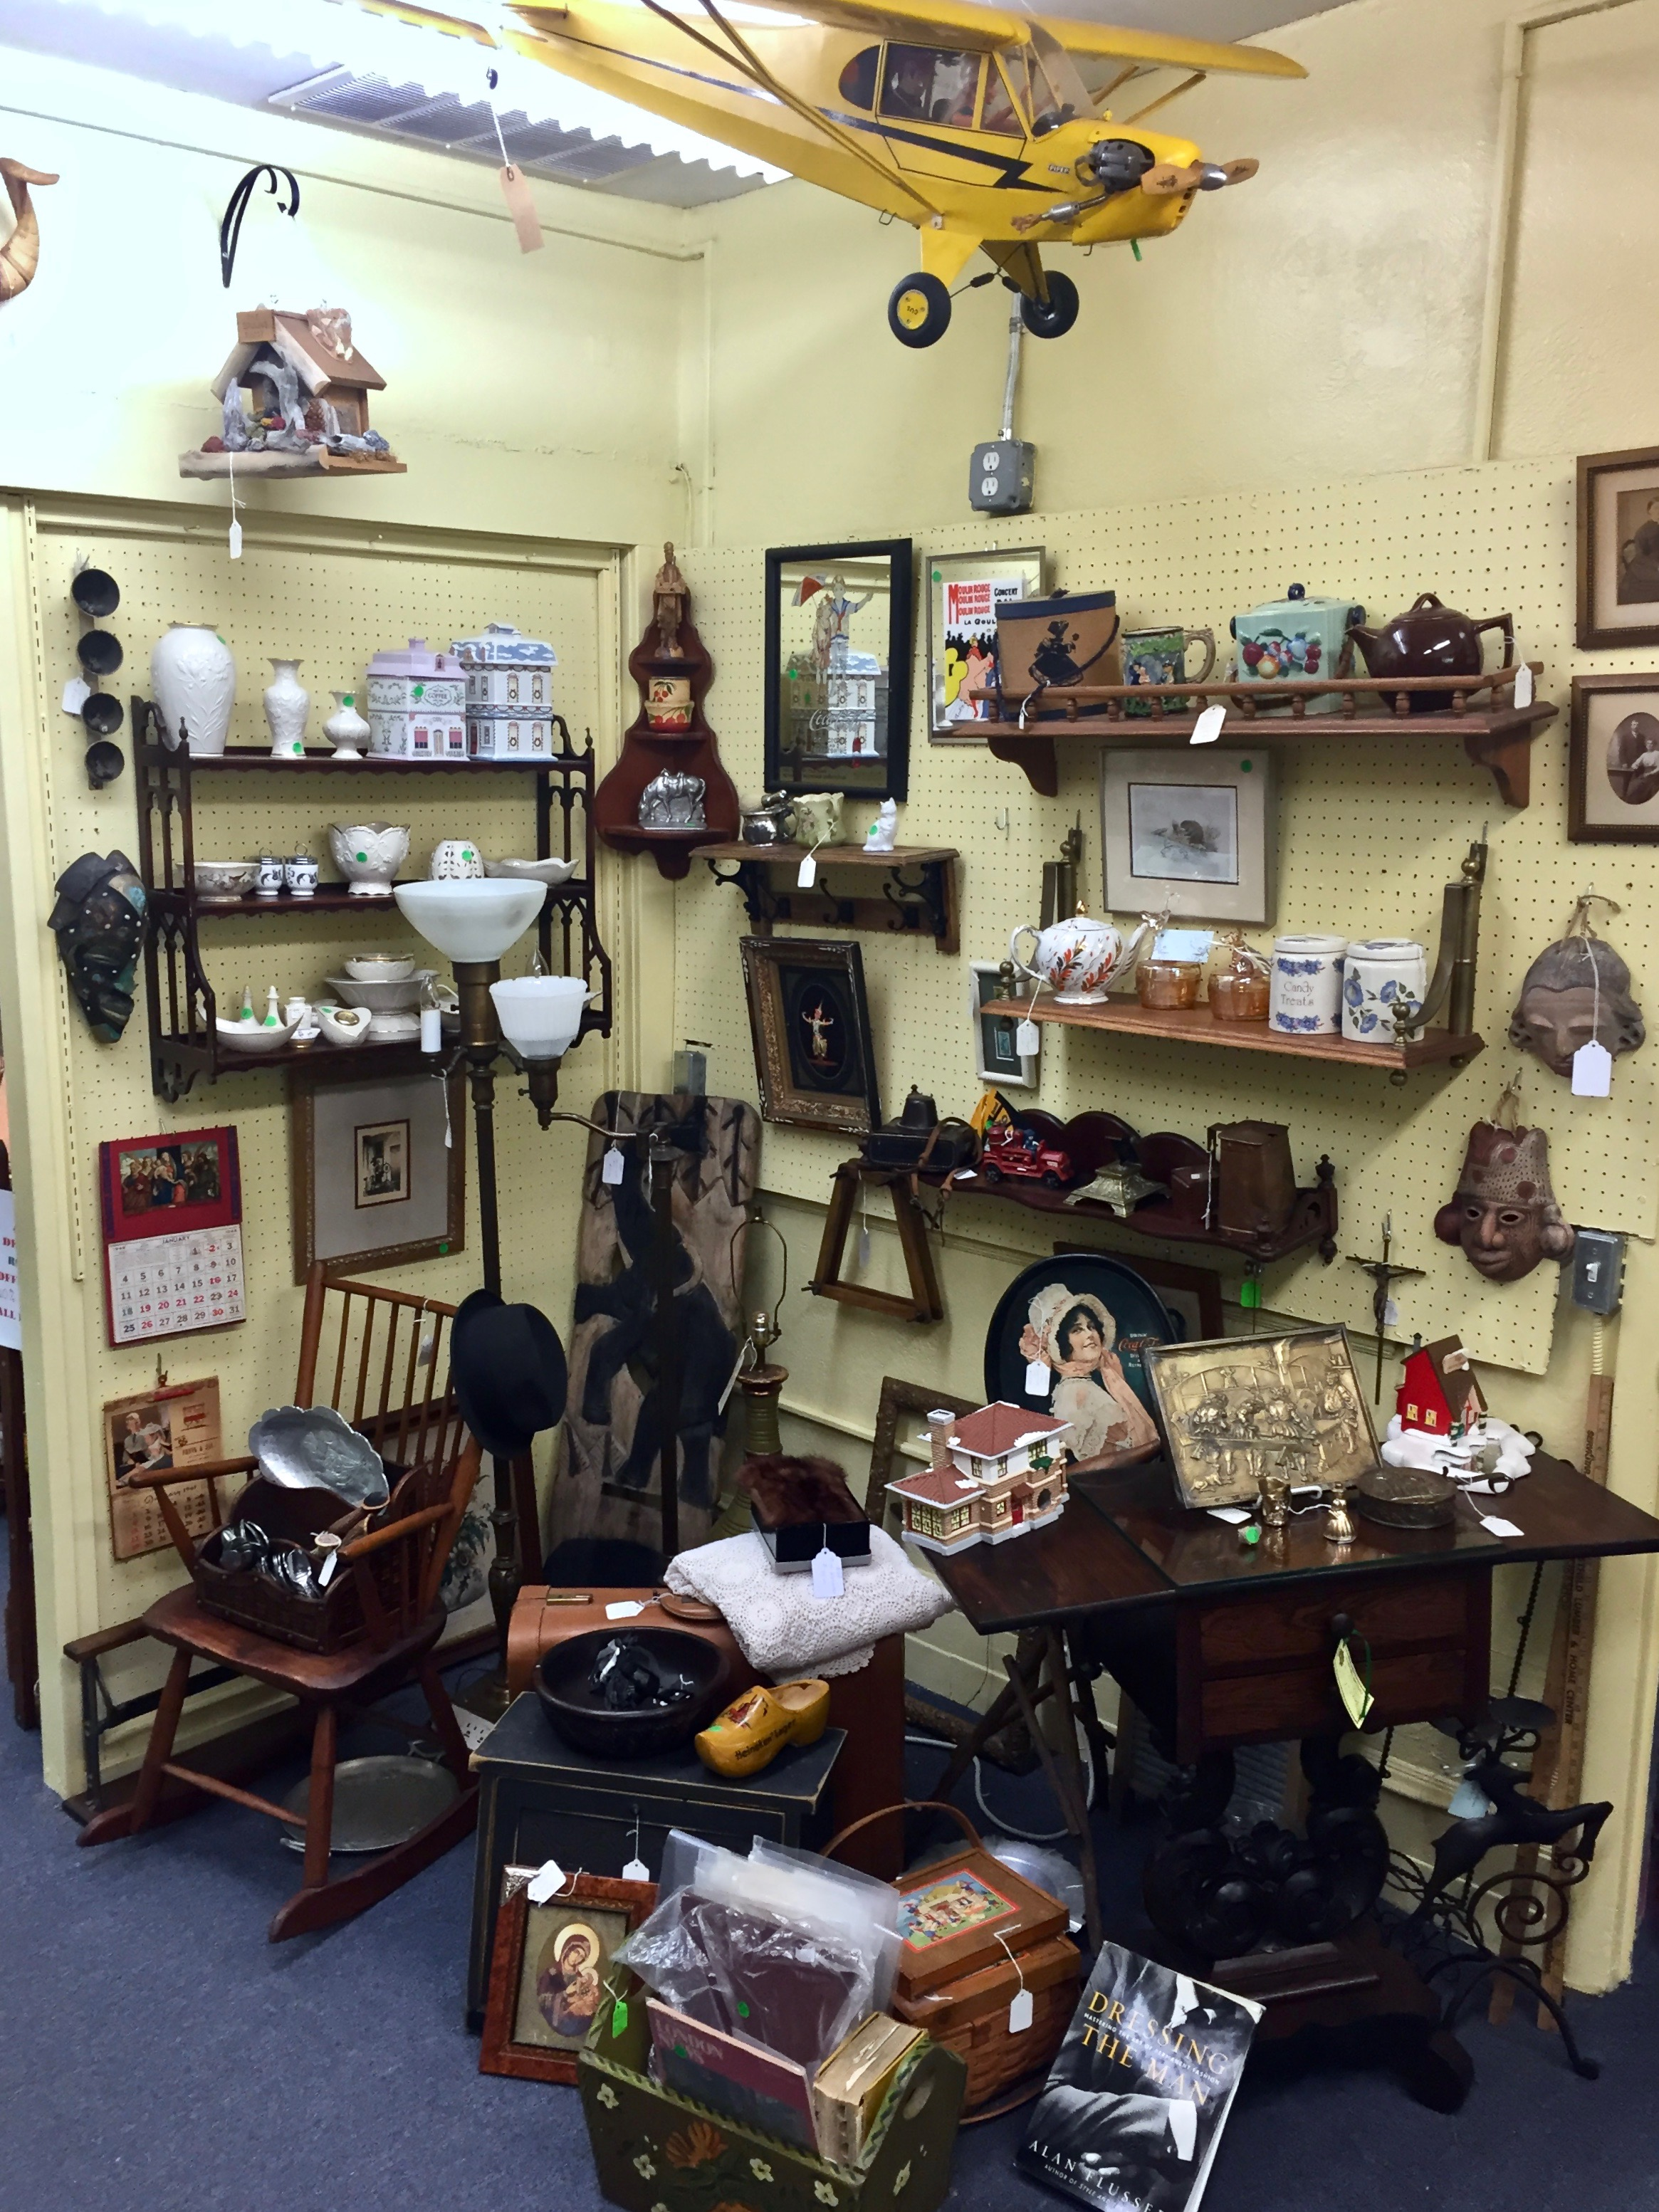 ANNETTE'S ANTIQUES   A long time collector and antiques dealer, Annette has a litt bit of everything to satisfy the visions of discrimating and eclectic buyers. Annette's Antiques features art, glassware, pottery, period funiture and modern day collectibles.